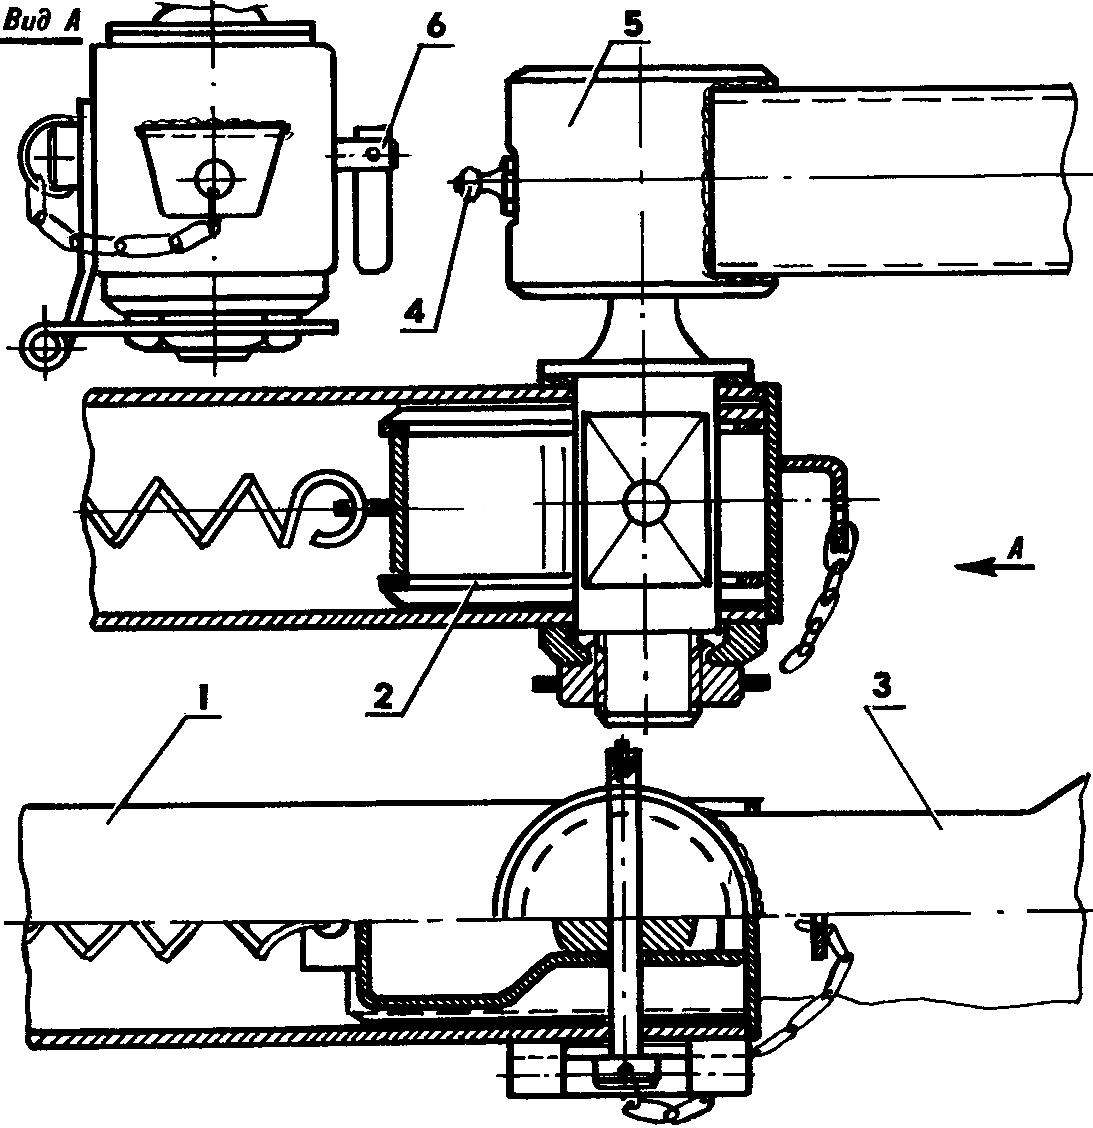 Design of the coupling node